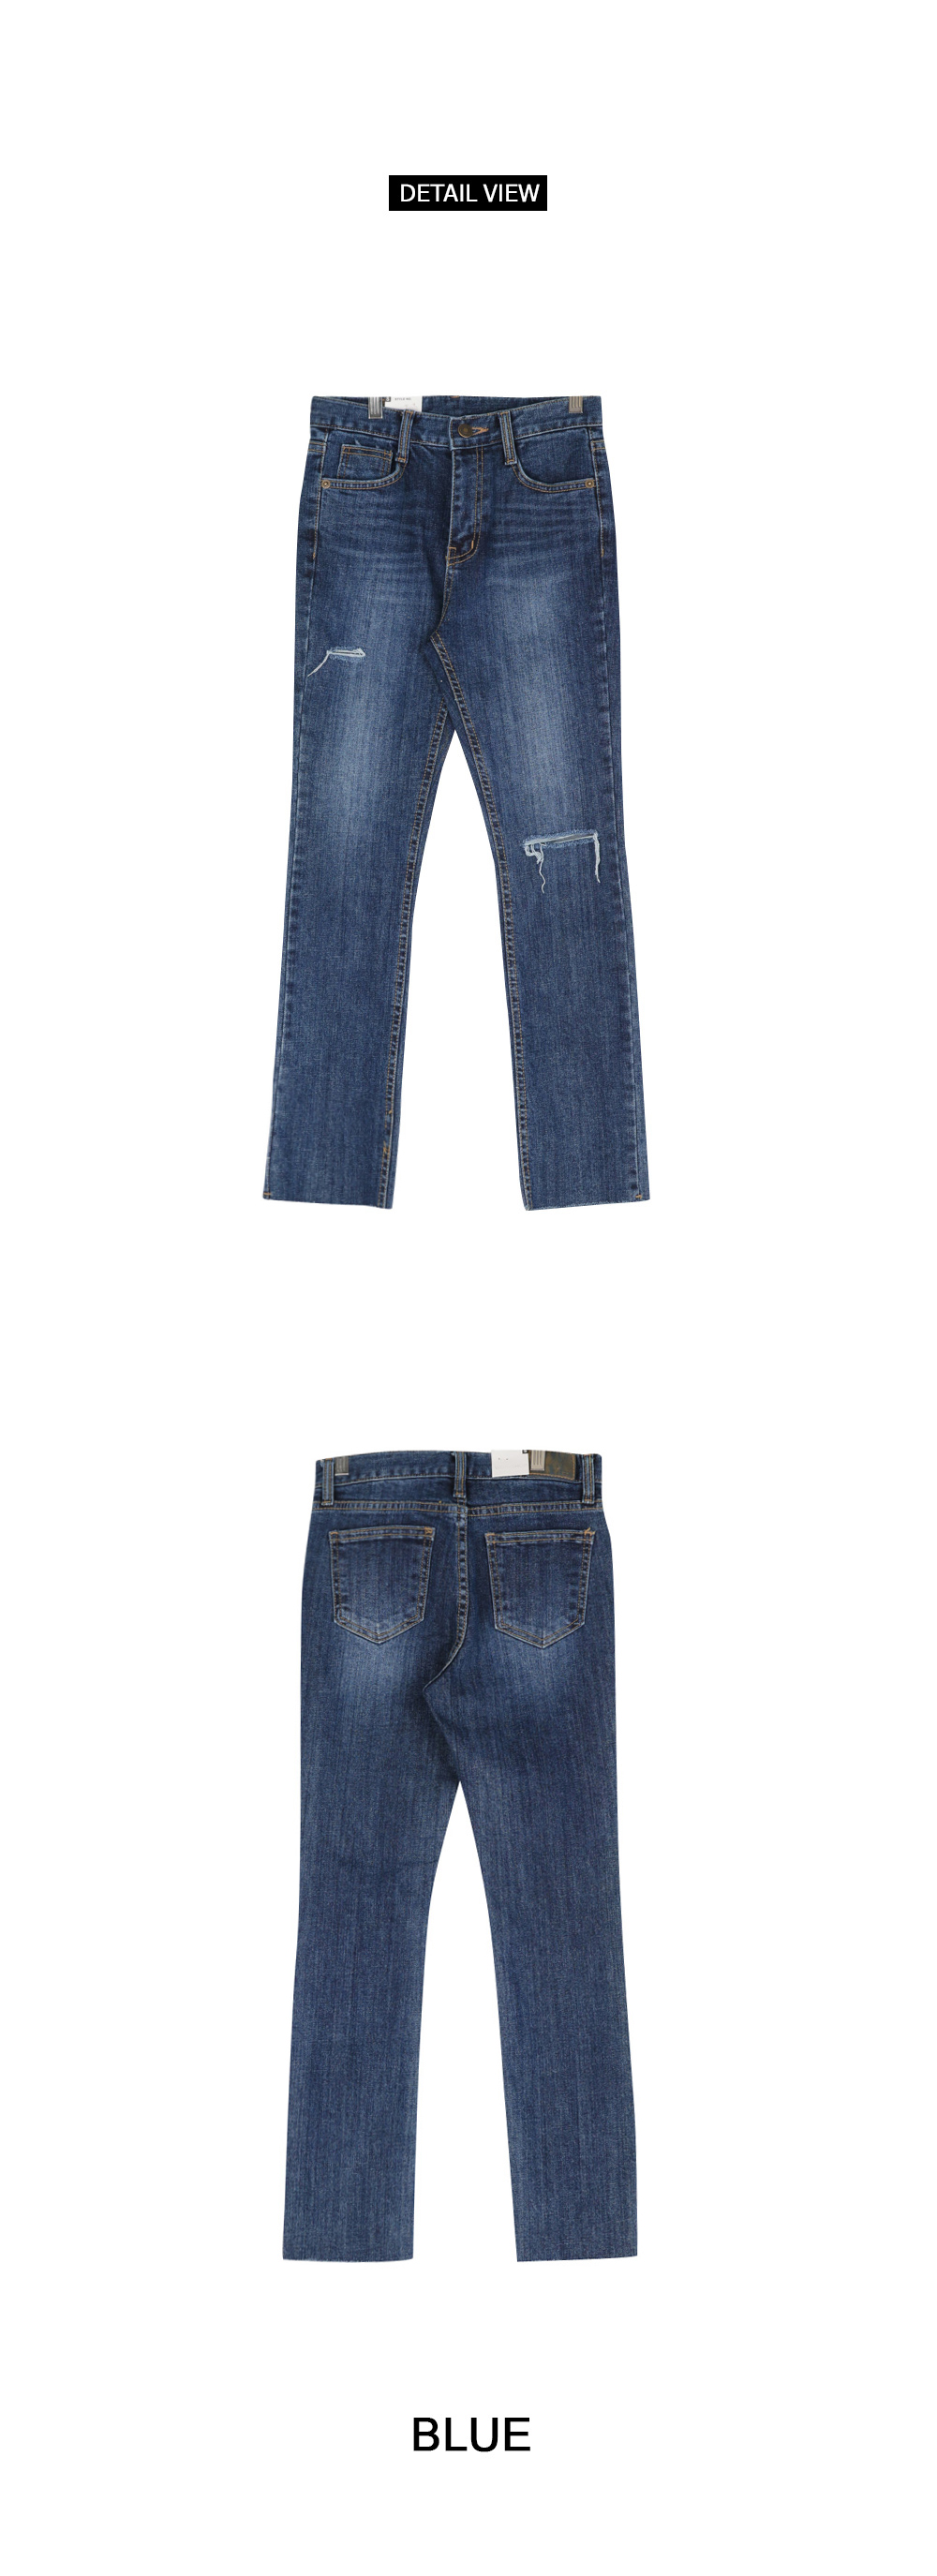 Leg washing worn knee denim